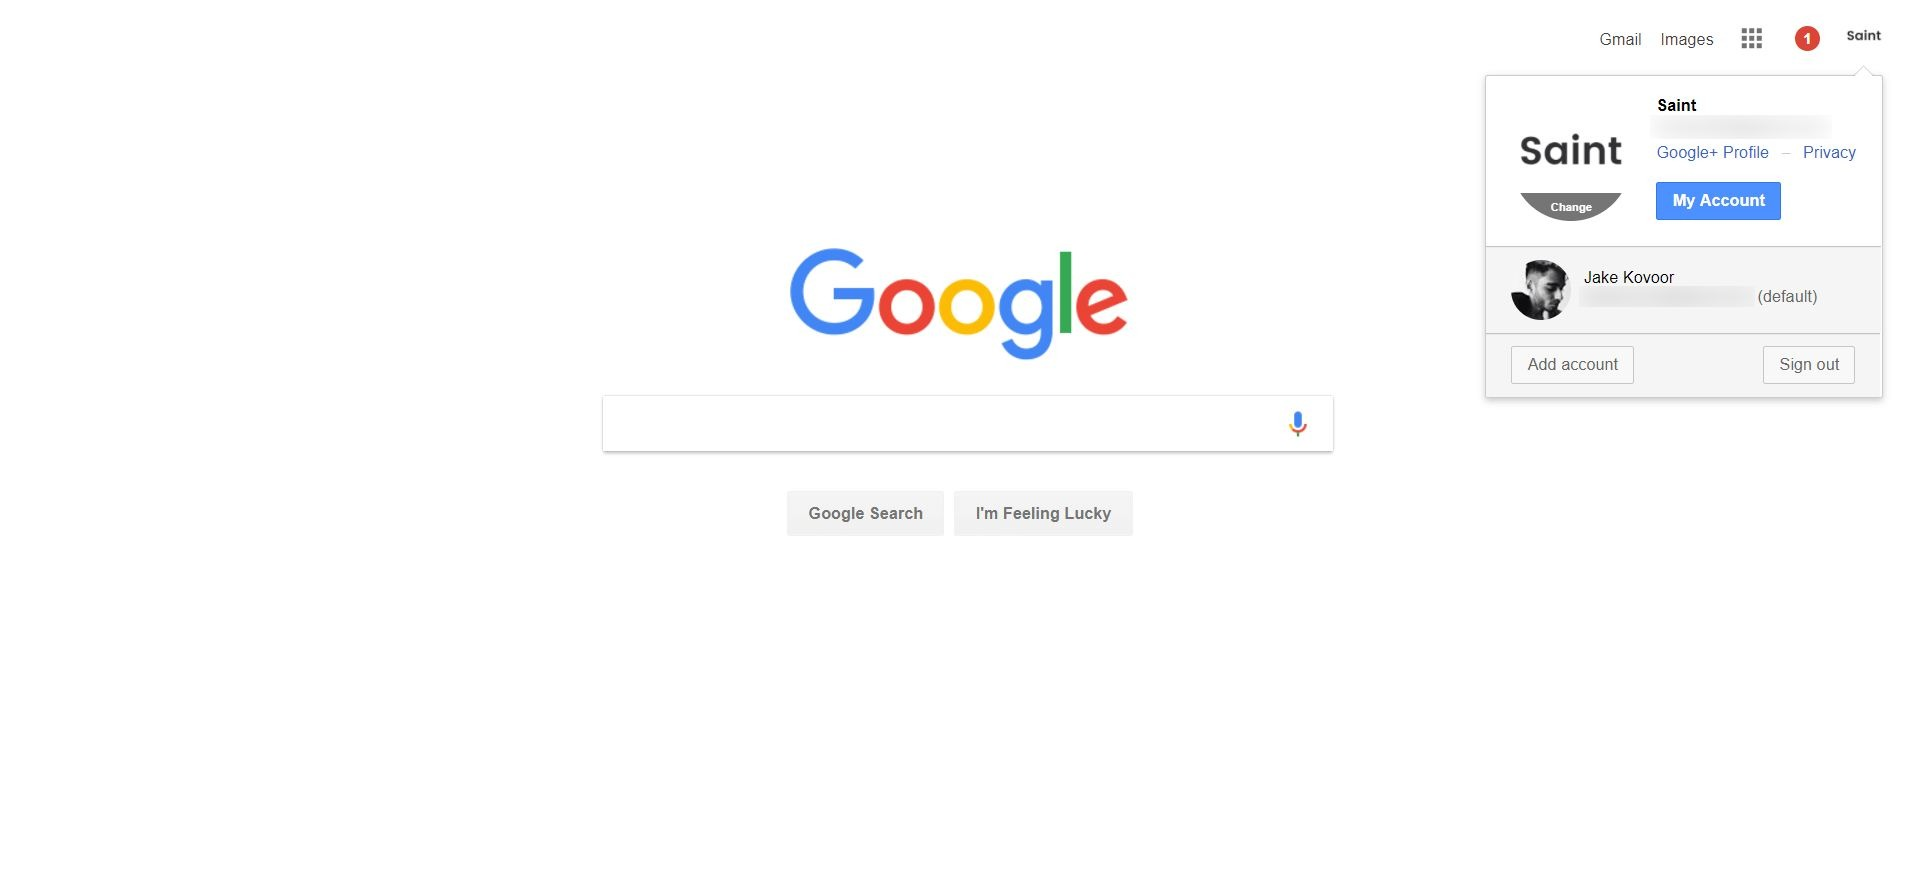 5 Steps to Open Two Google Accounts at the Same Time - Saint